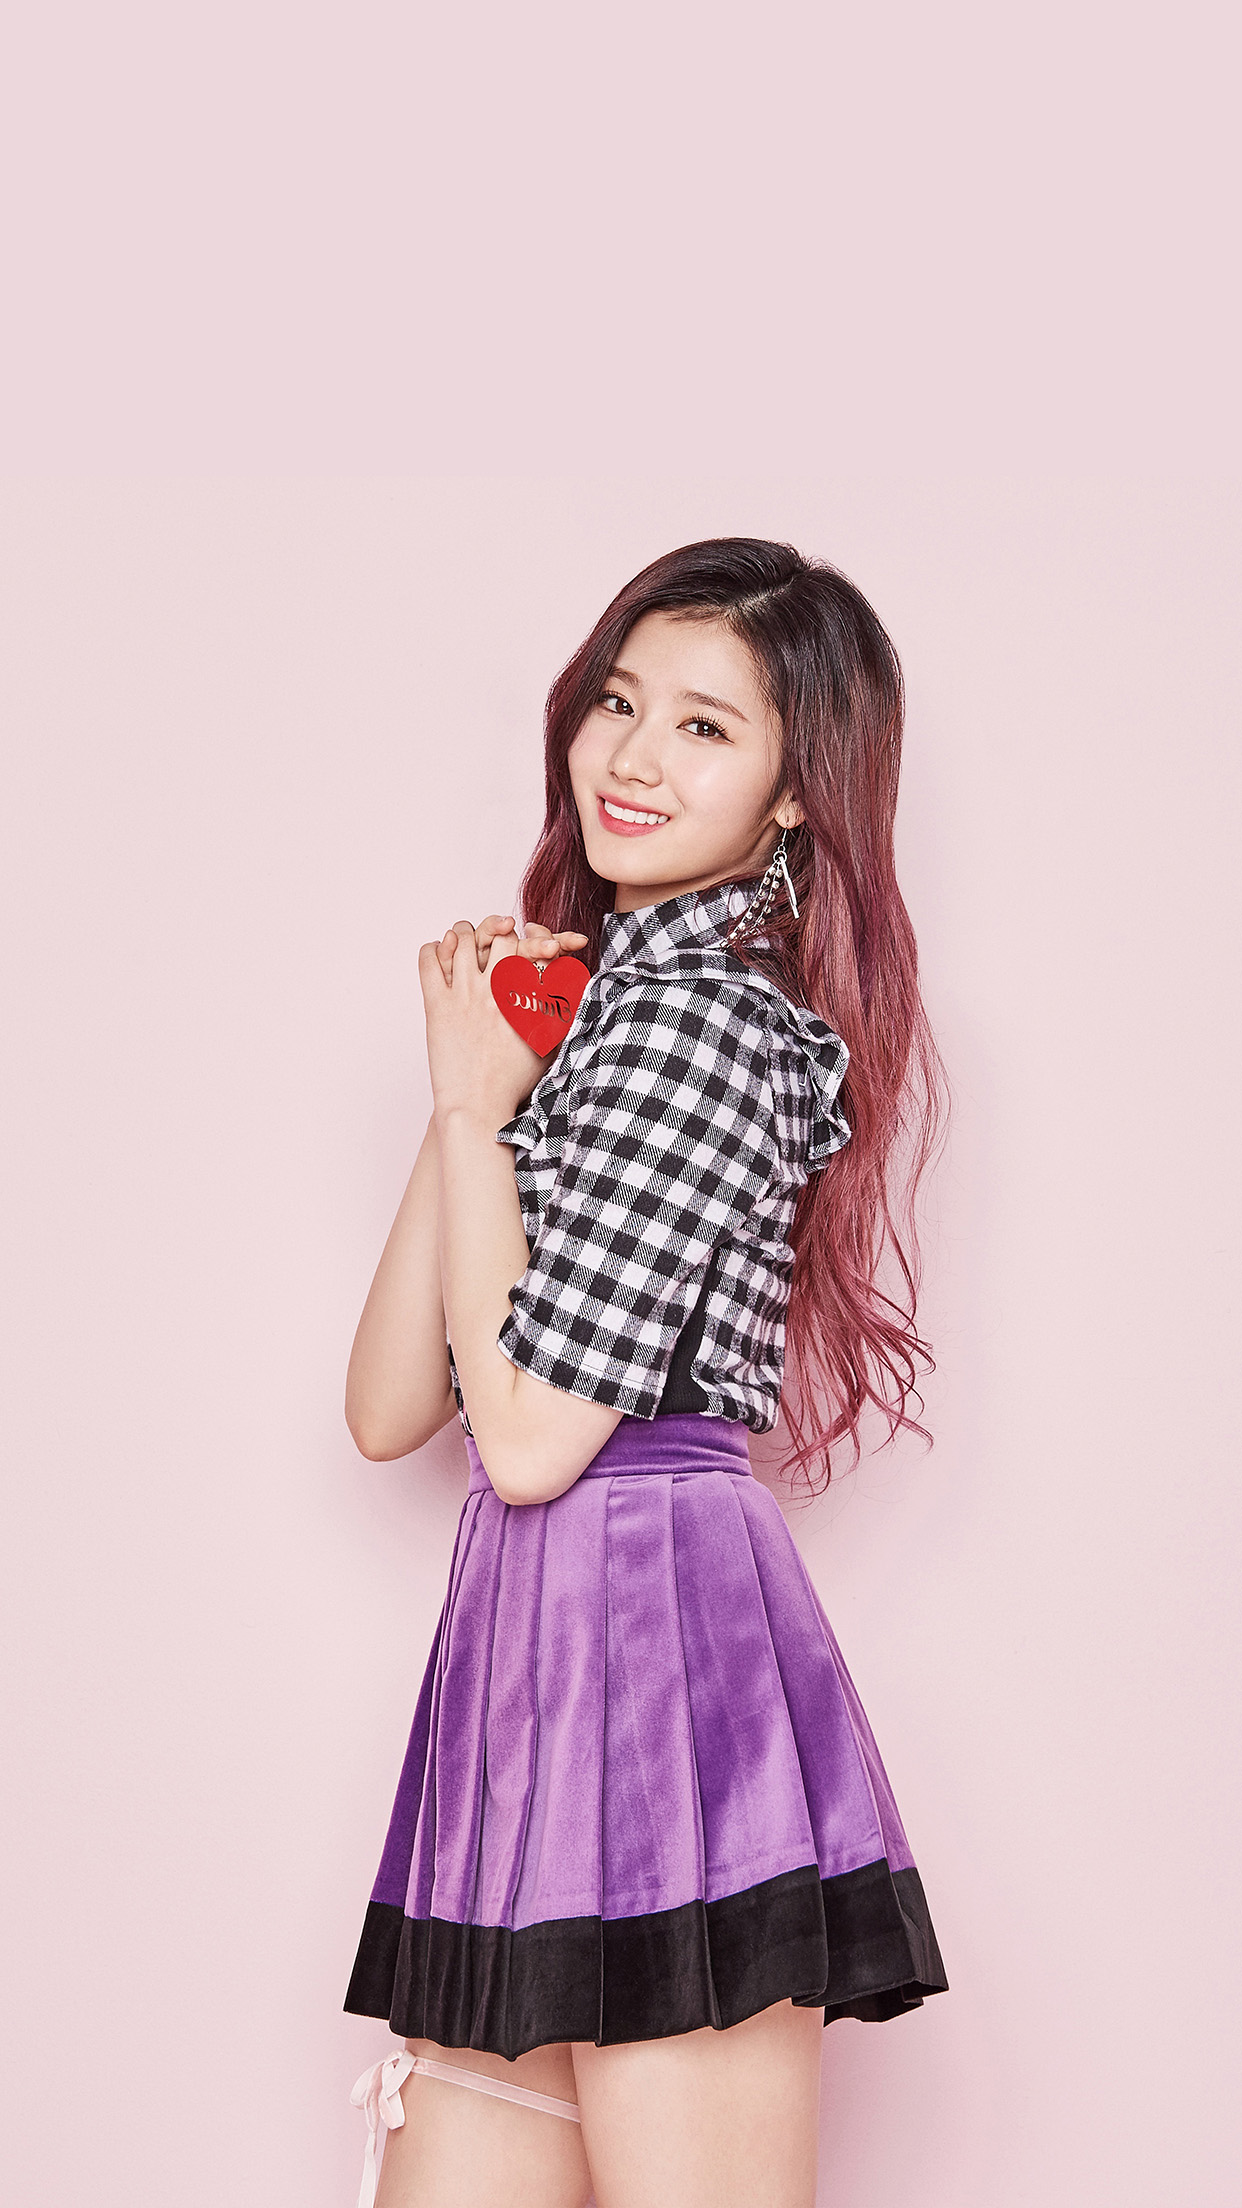 Wallpaper Cute Pink For Iphone 6 Hm54 Pink Sana Girl Kpop Twice Asian Wallpaper